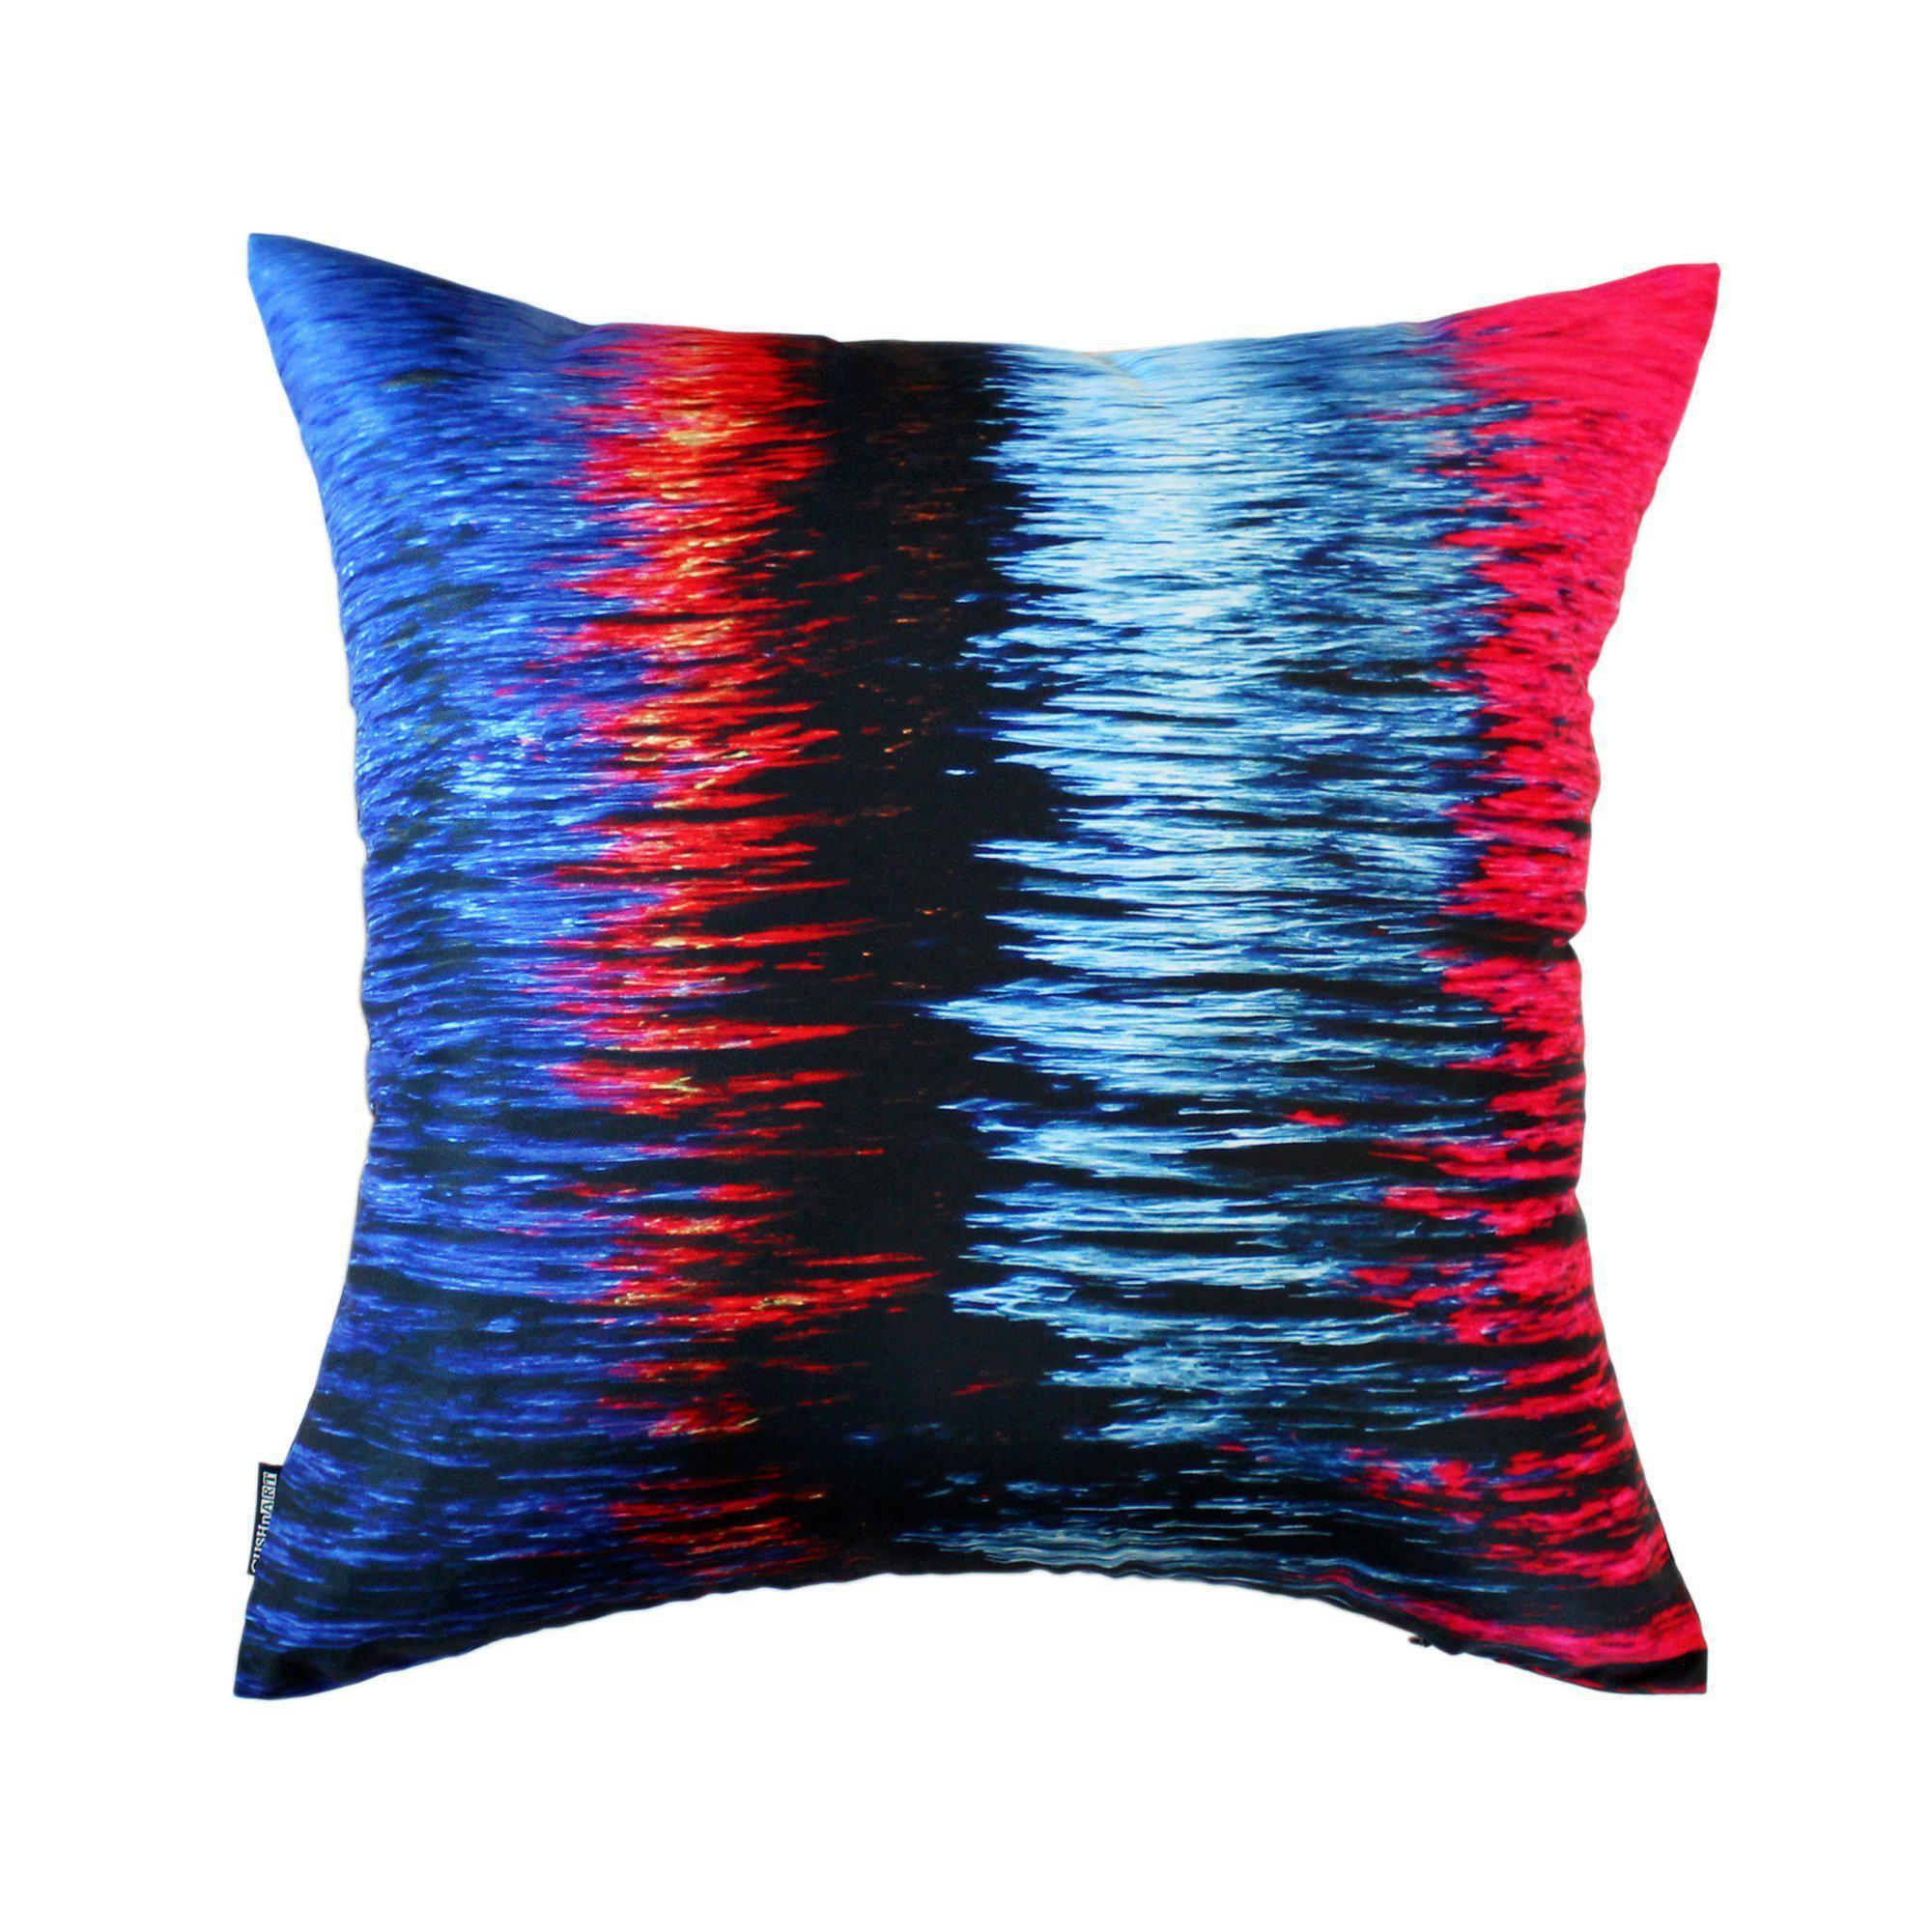 Multi-coloured Night River Cushion Cover-CUSHnART-Temples and Markets